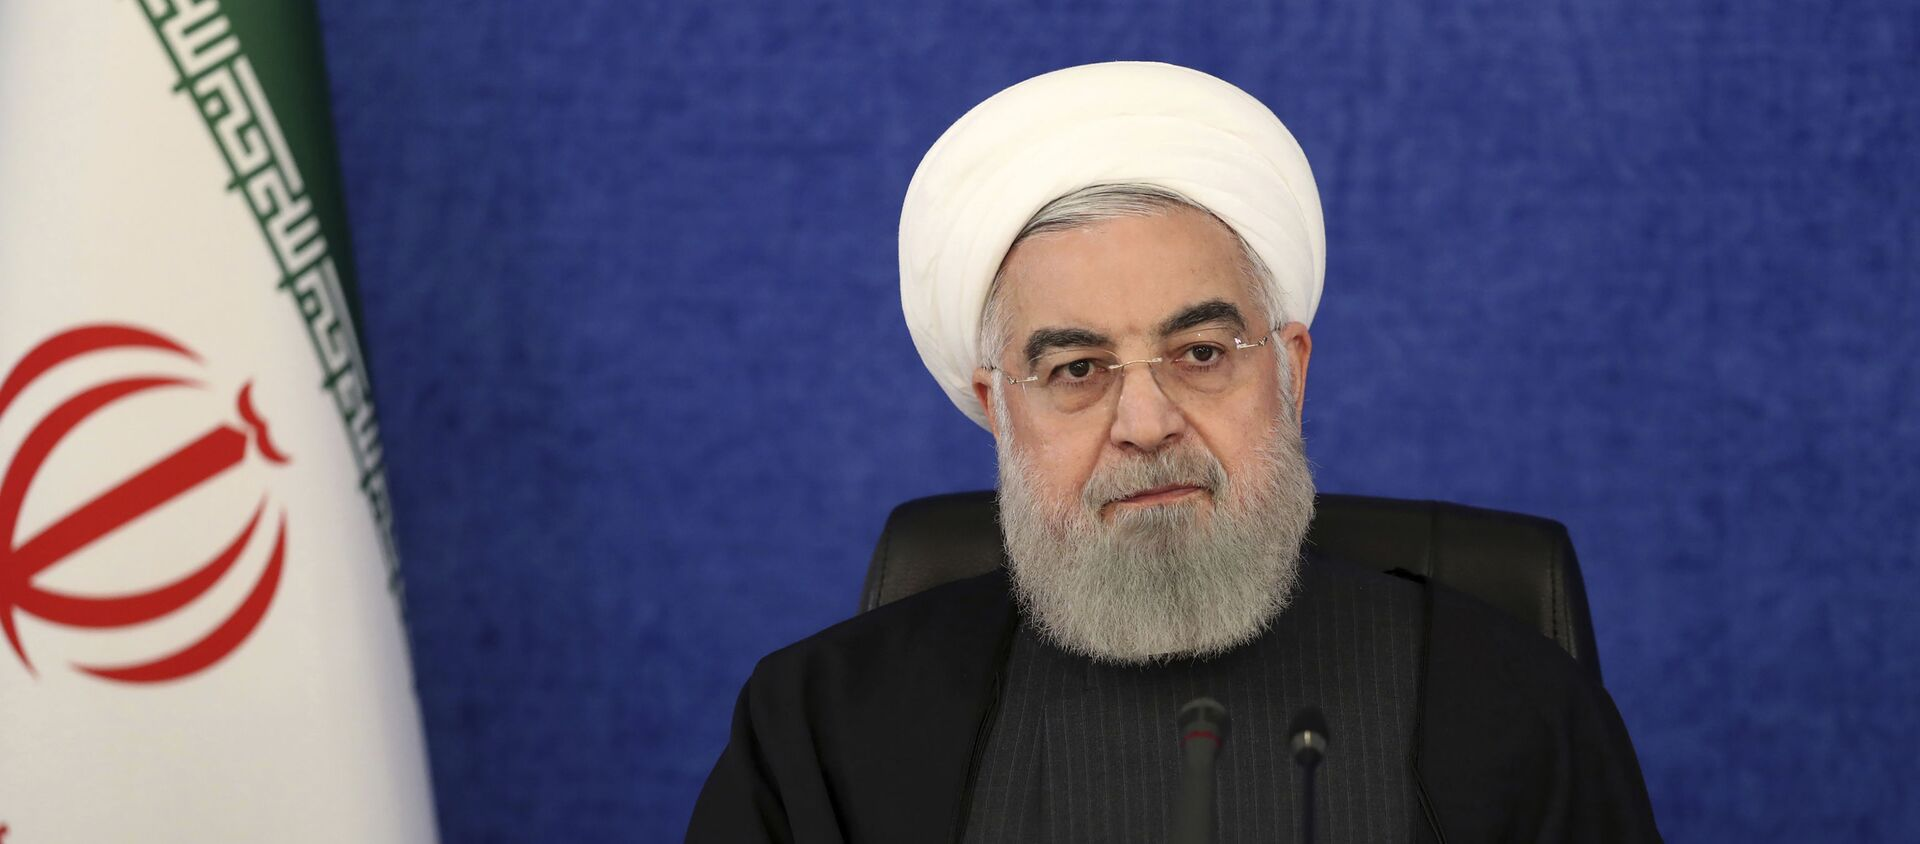 In this photo released by the official website of the office of the Iranian Presidency, President Hassan Rouhani attends a meeting in Tehran, Iran, Thursday, Jan. 7, 2021 - Sputnik Italia, 1920, 15.04.2021